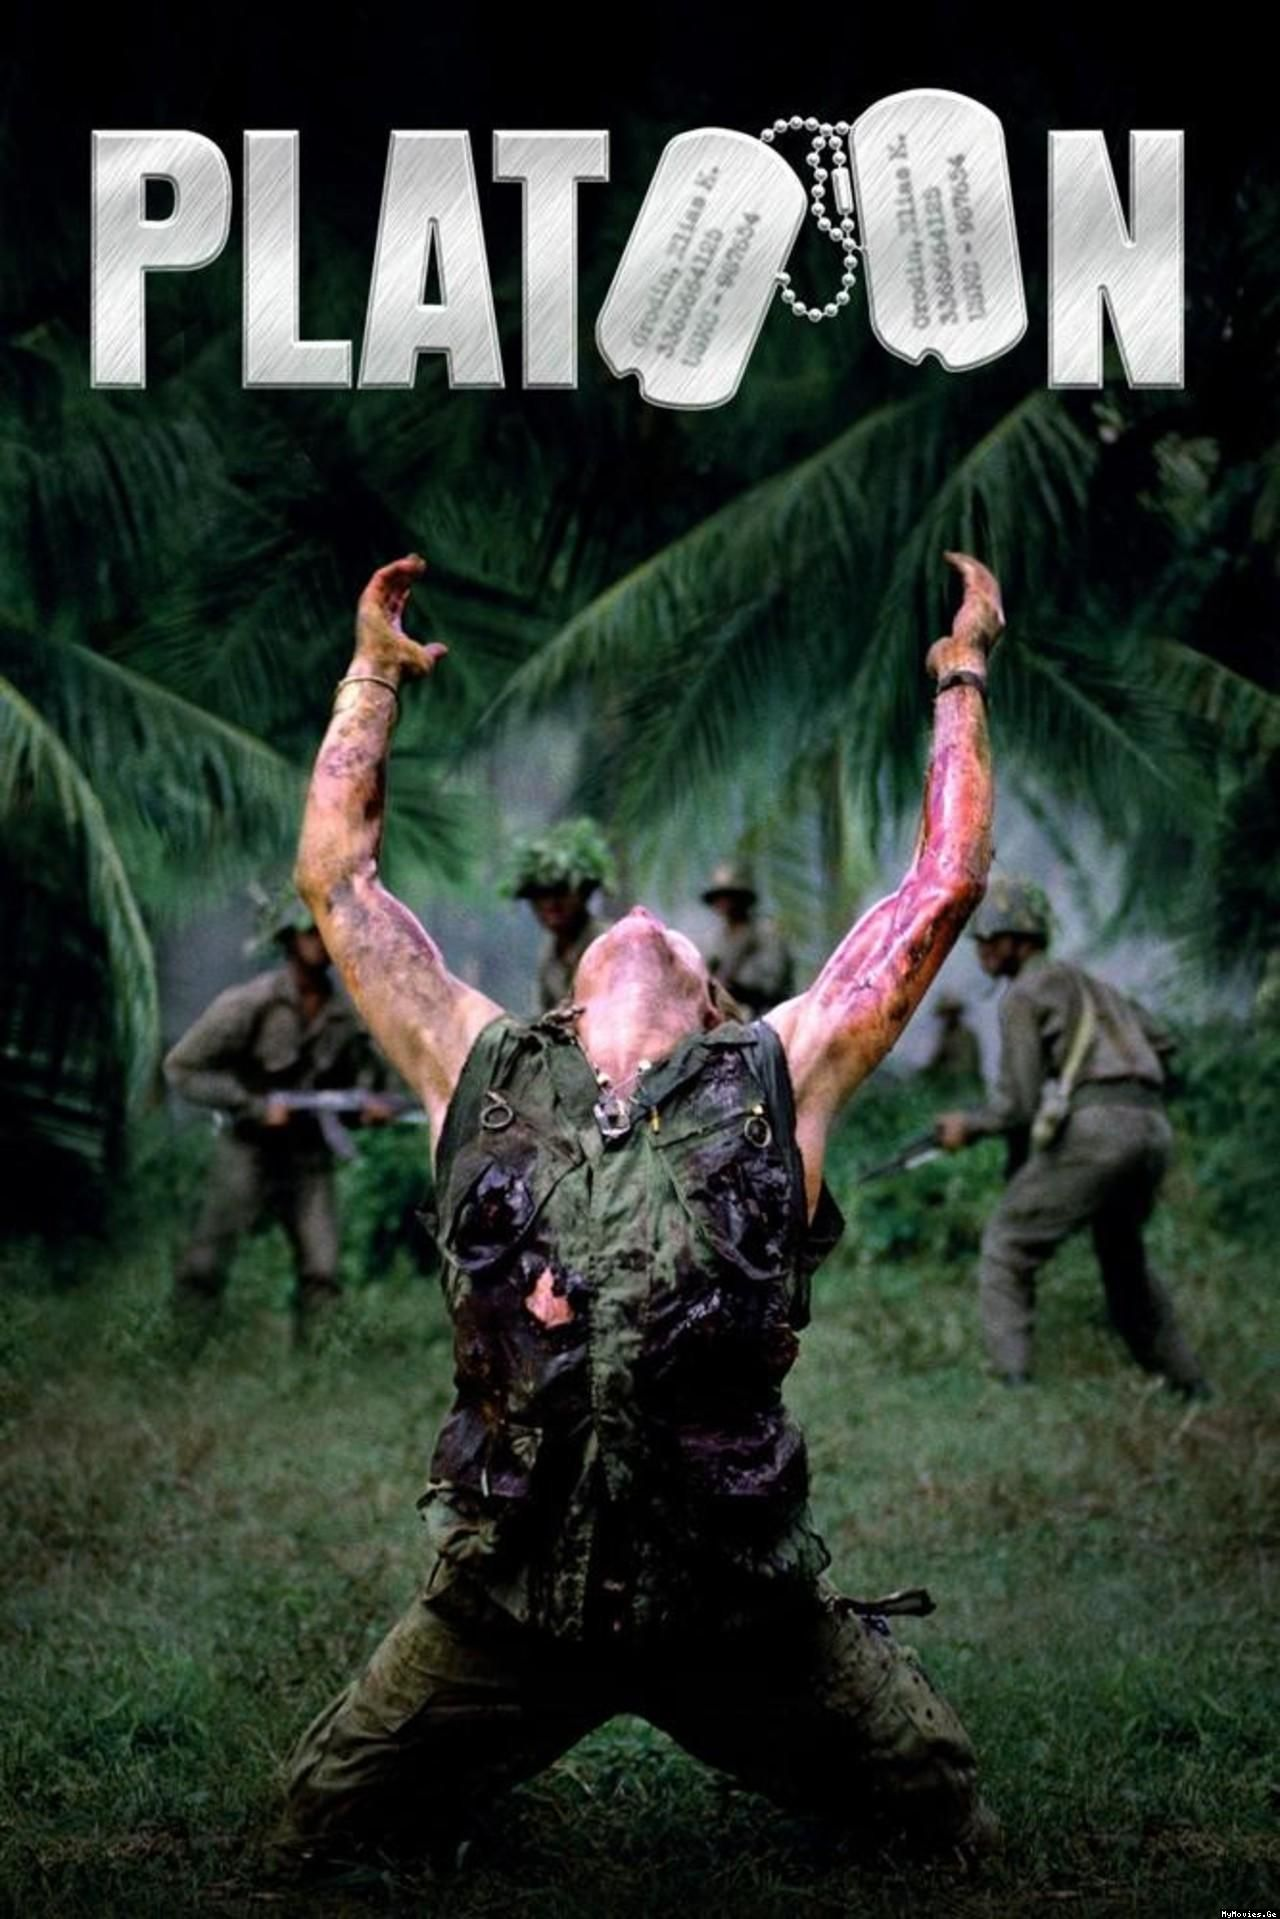 Platoon the Vietnam movie written and directed by a Nam Vet Oliver Stone.  One of my favorites of his.